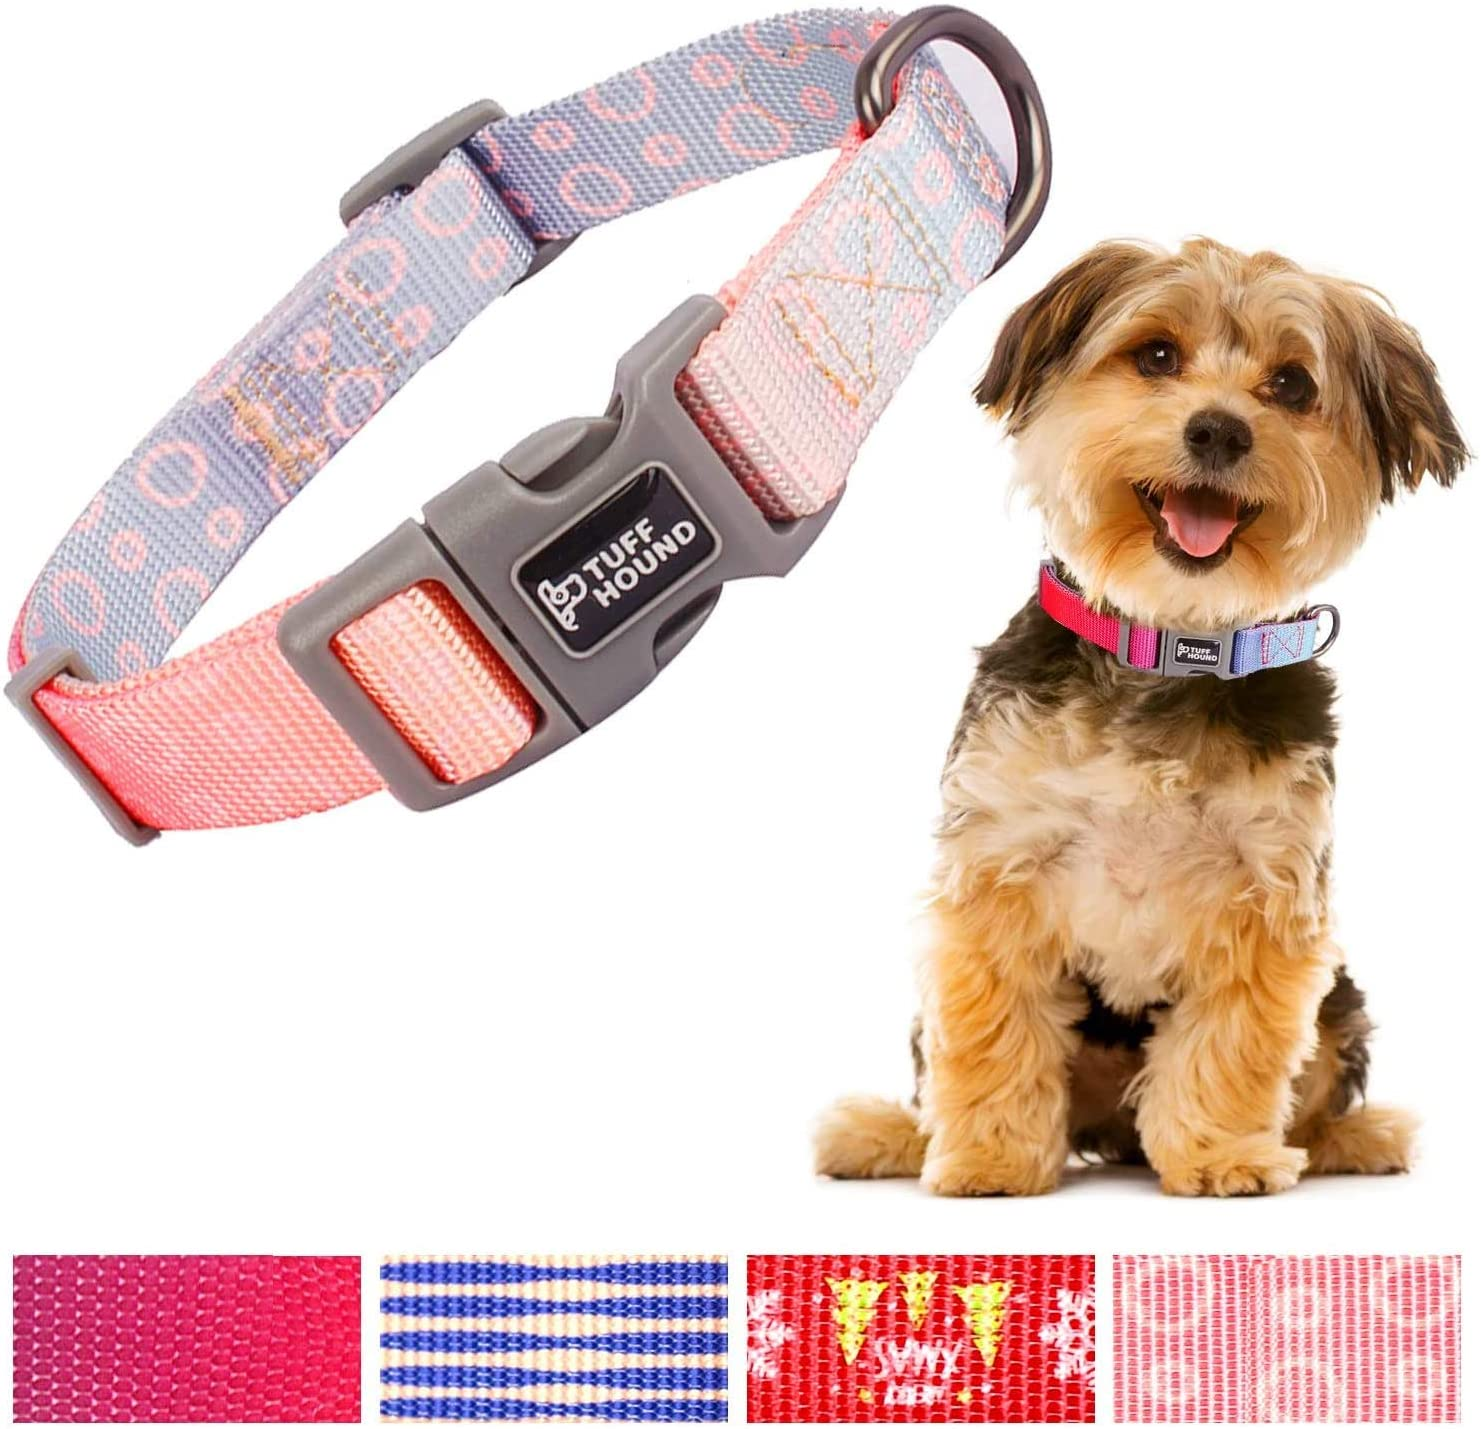 O'woda Adjustable Nylon Dog Collar, Gradient Color, Medium or Large Size, Personalized Collars or Seatbelts for Dogs and Cats Small Medium Large